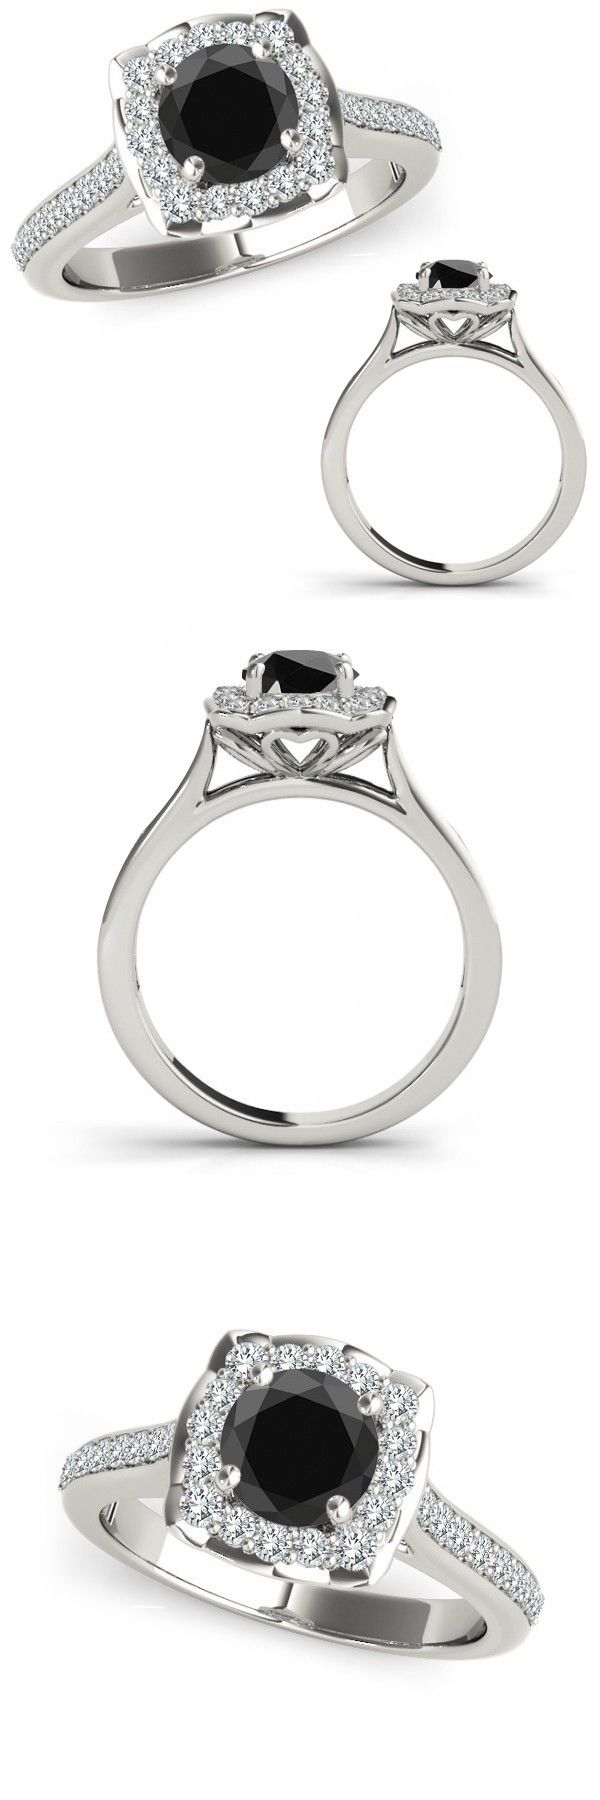 Other engagement rings carat black diamond lovely classy